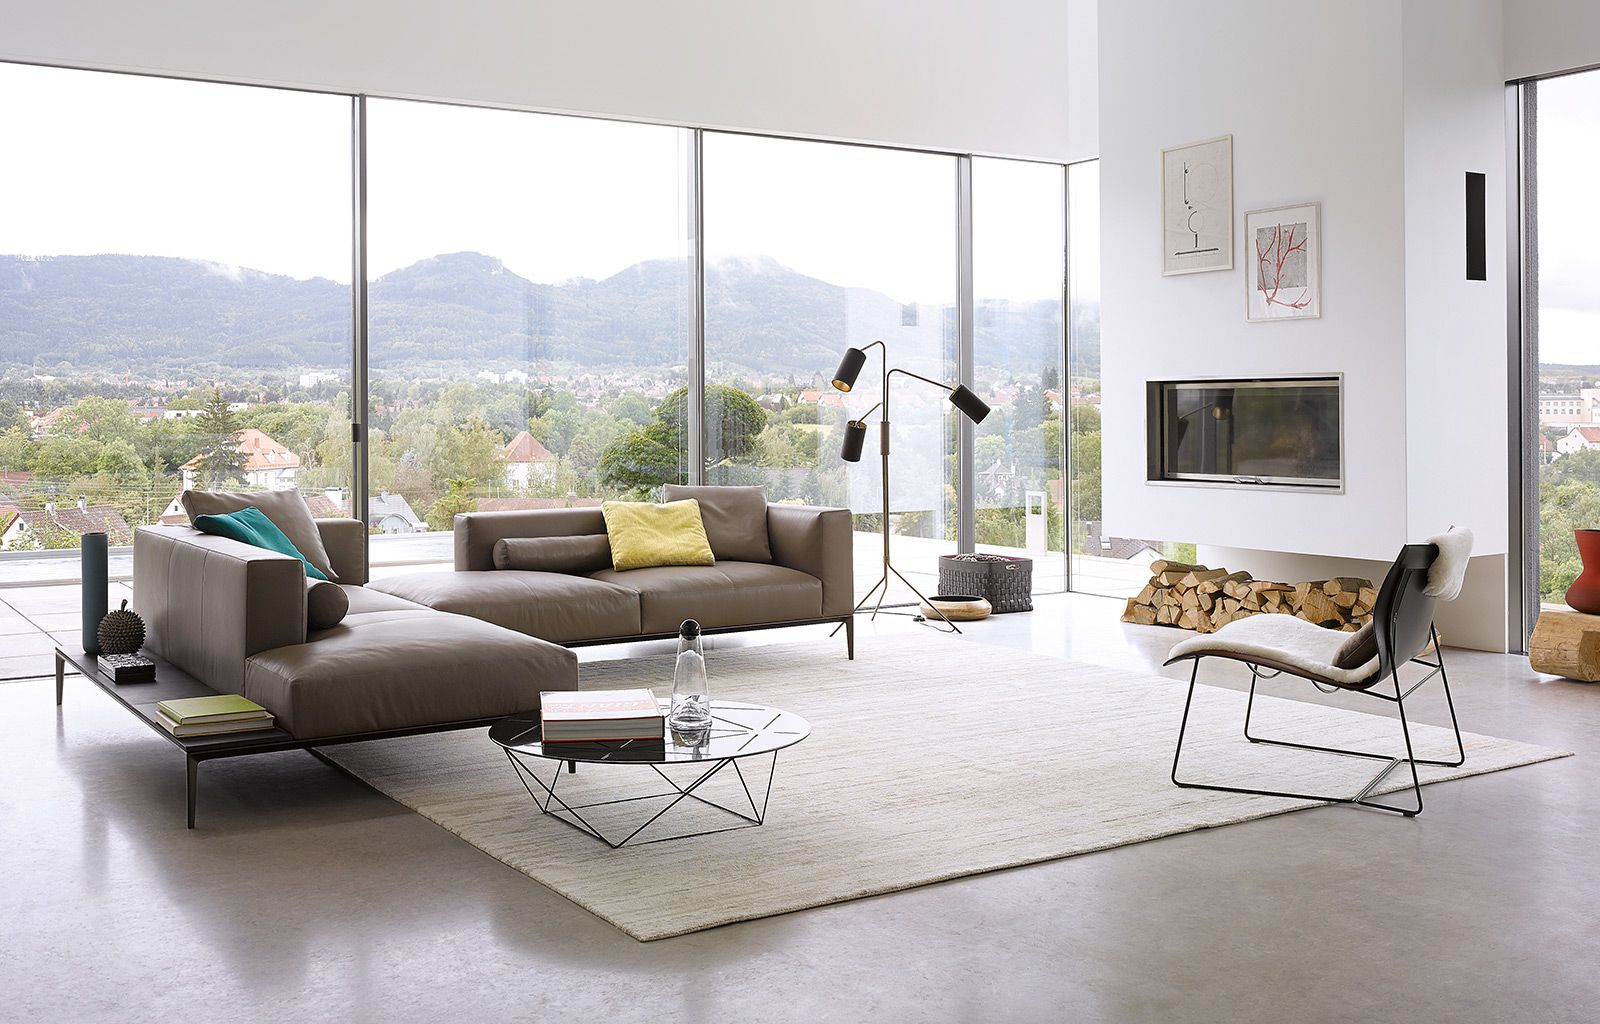 Walter Knoll Sofa Jaan Living Walter Knoll Lounge Seating In 2019 Sofa